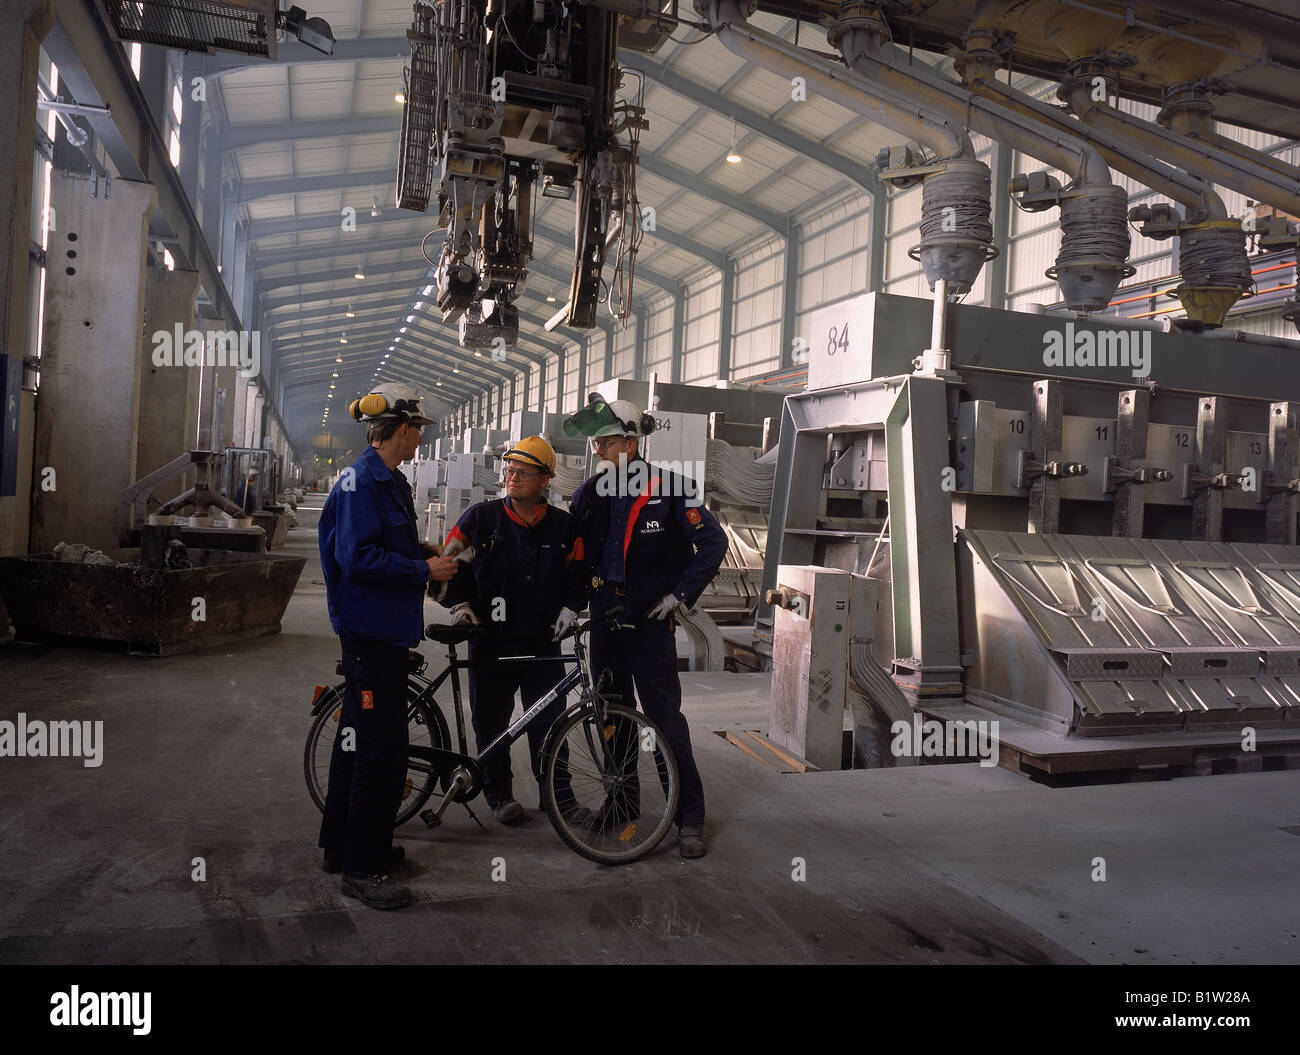 Workers with Bicycle in Nordural Aluminum Factory, Iceland - Stock Image